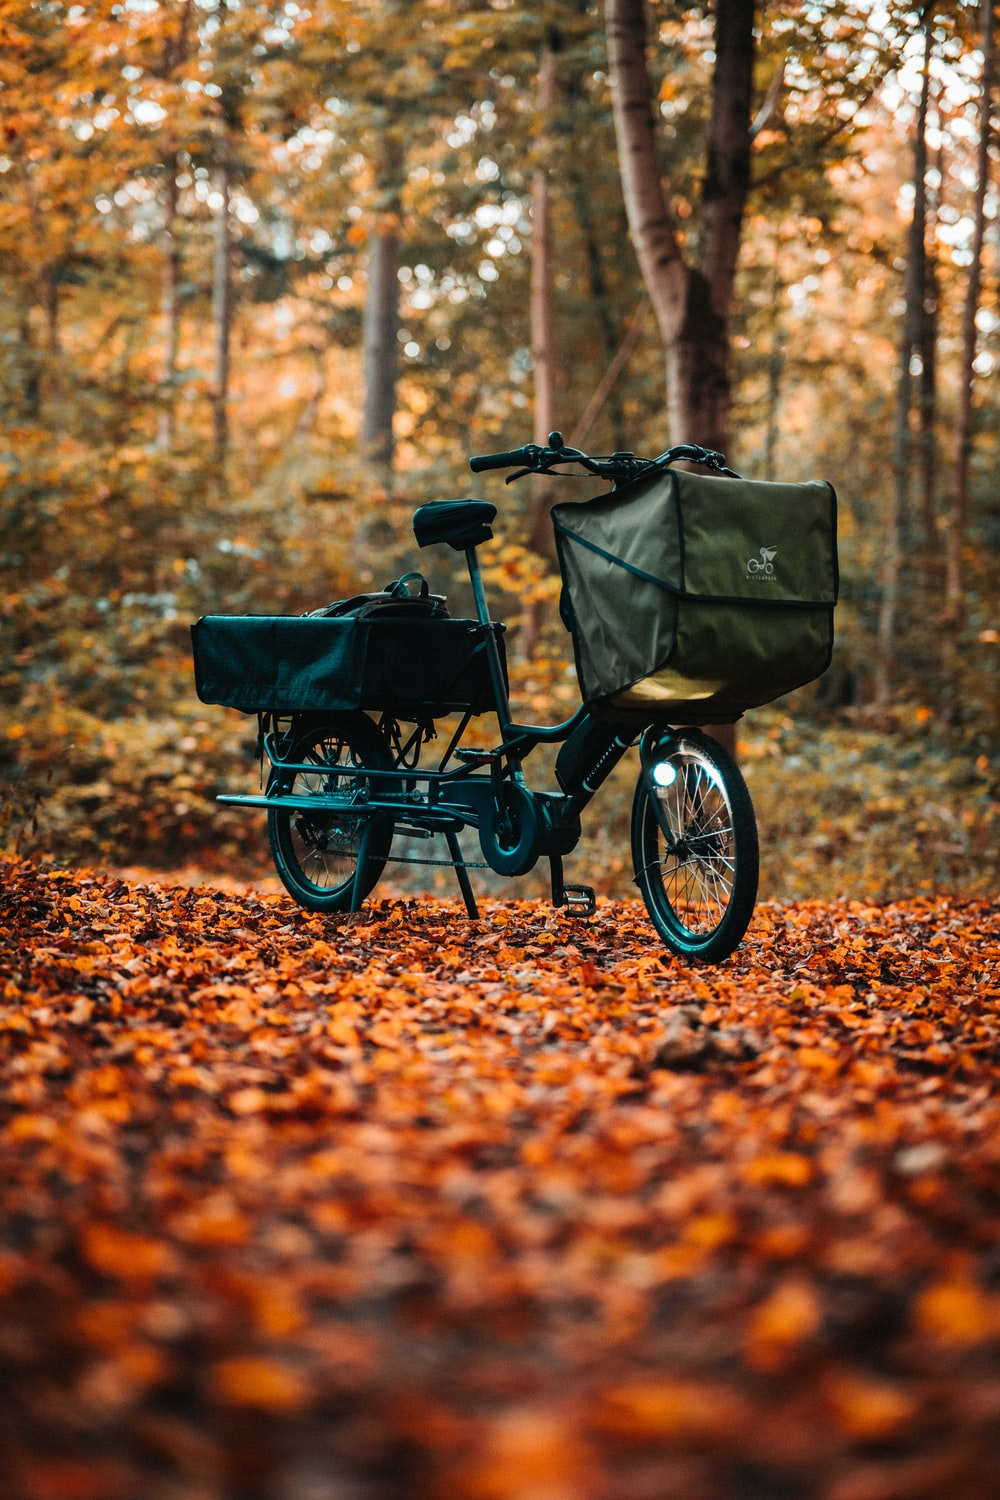 black and blue bicycle on brown dried leaves during daytime